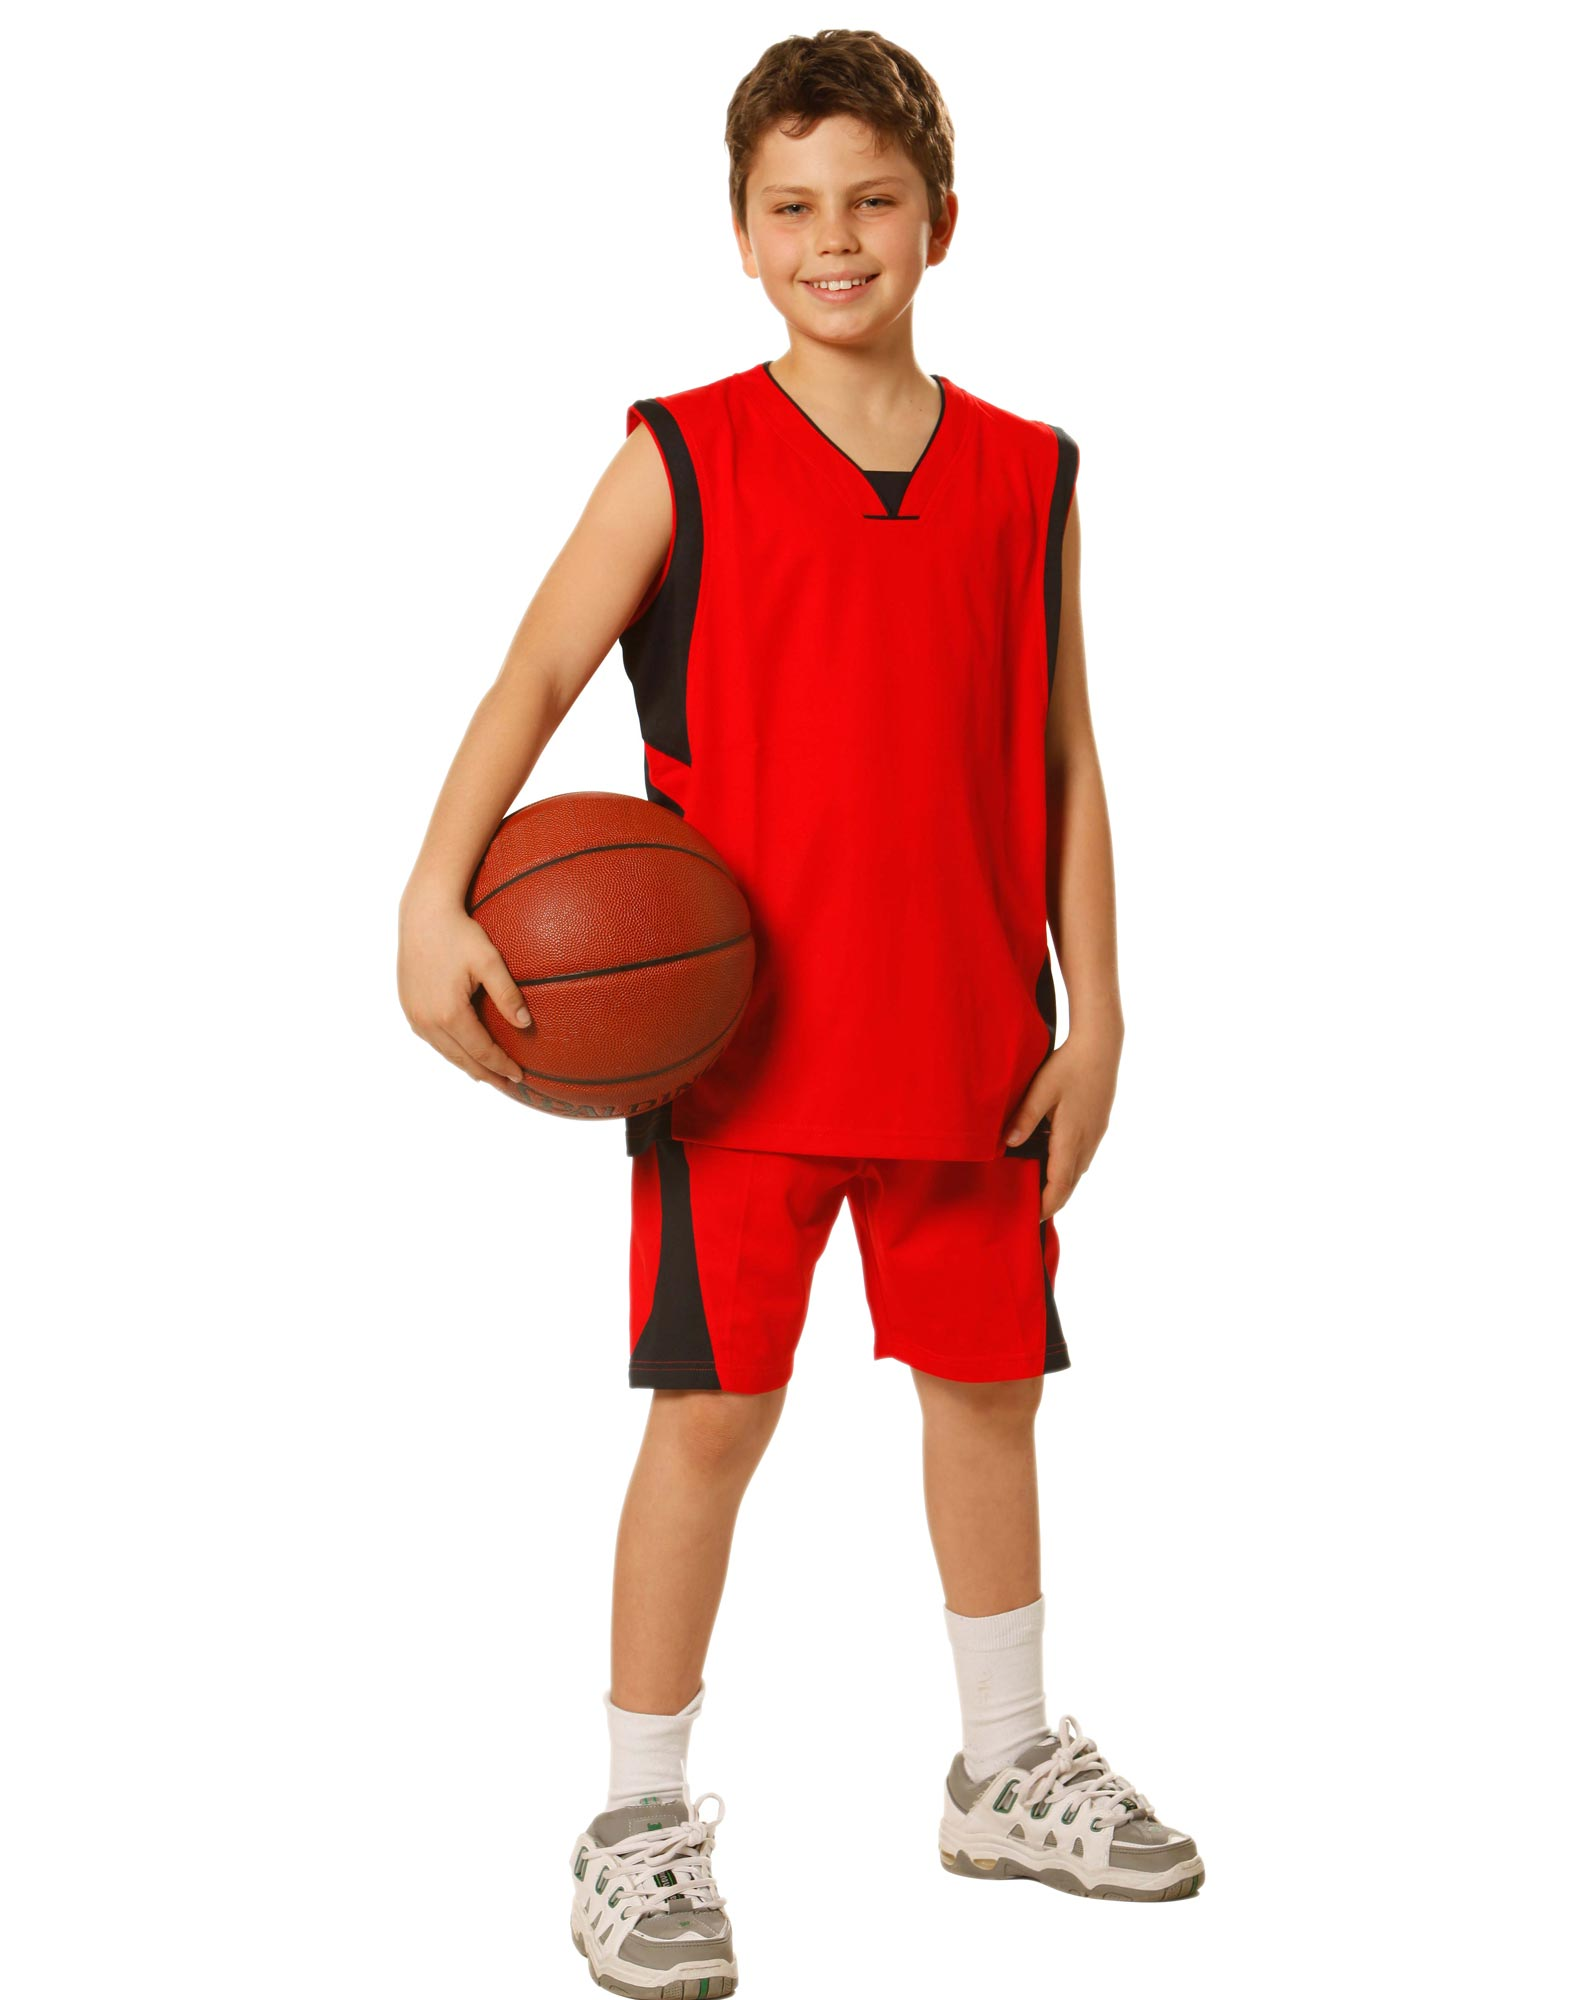 White Basketball Players With Shoes